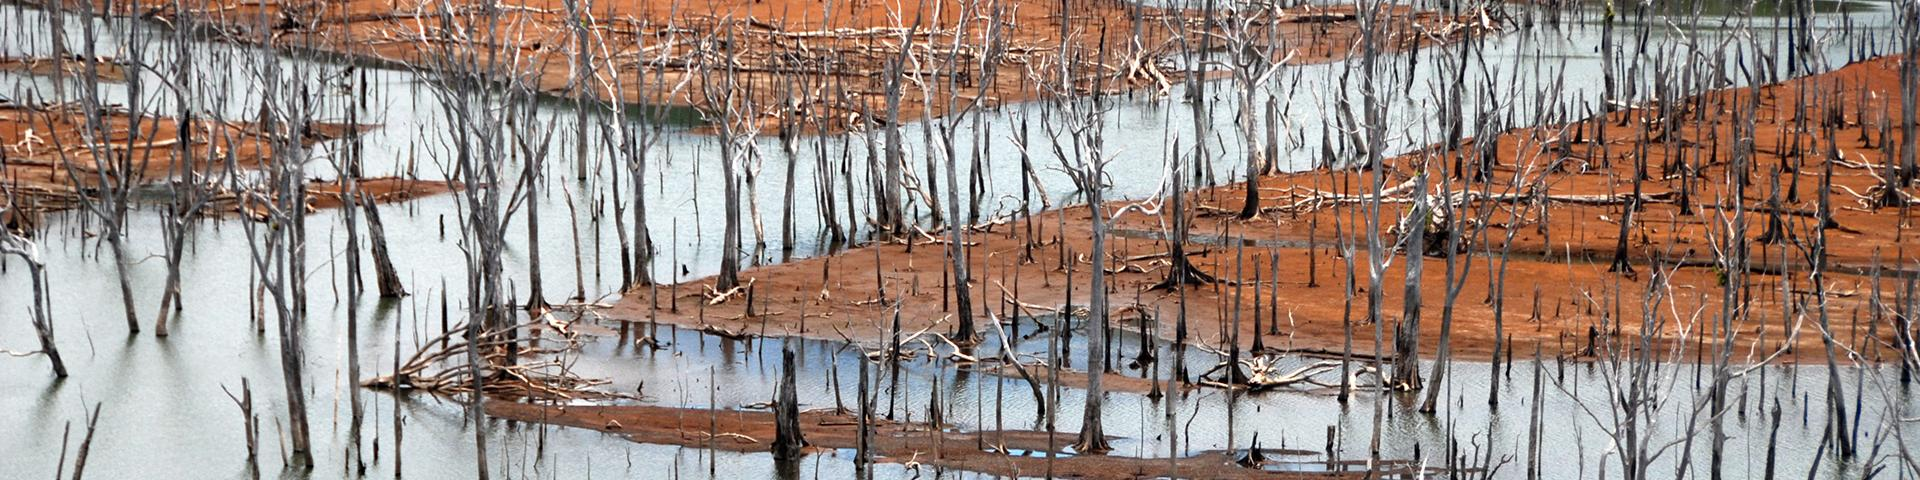 Submerged forest in the Blue River Park, New Caledonia